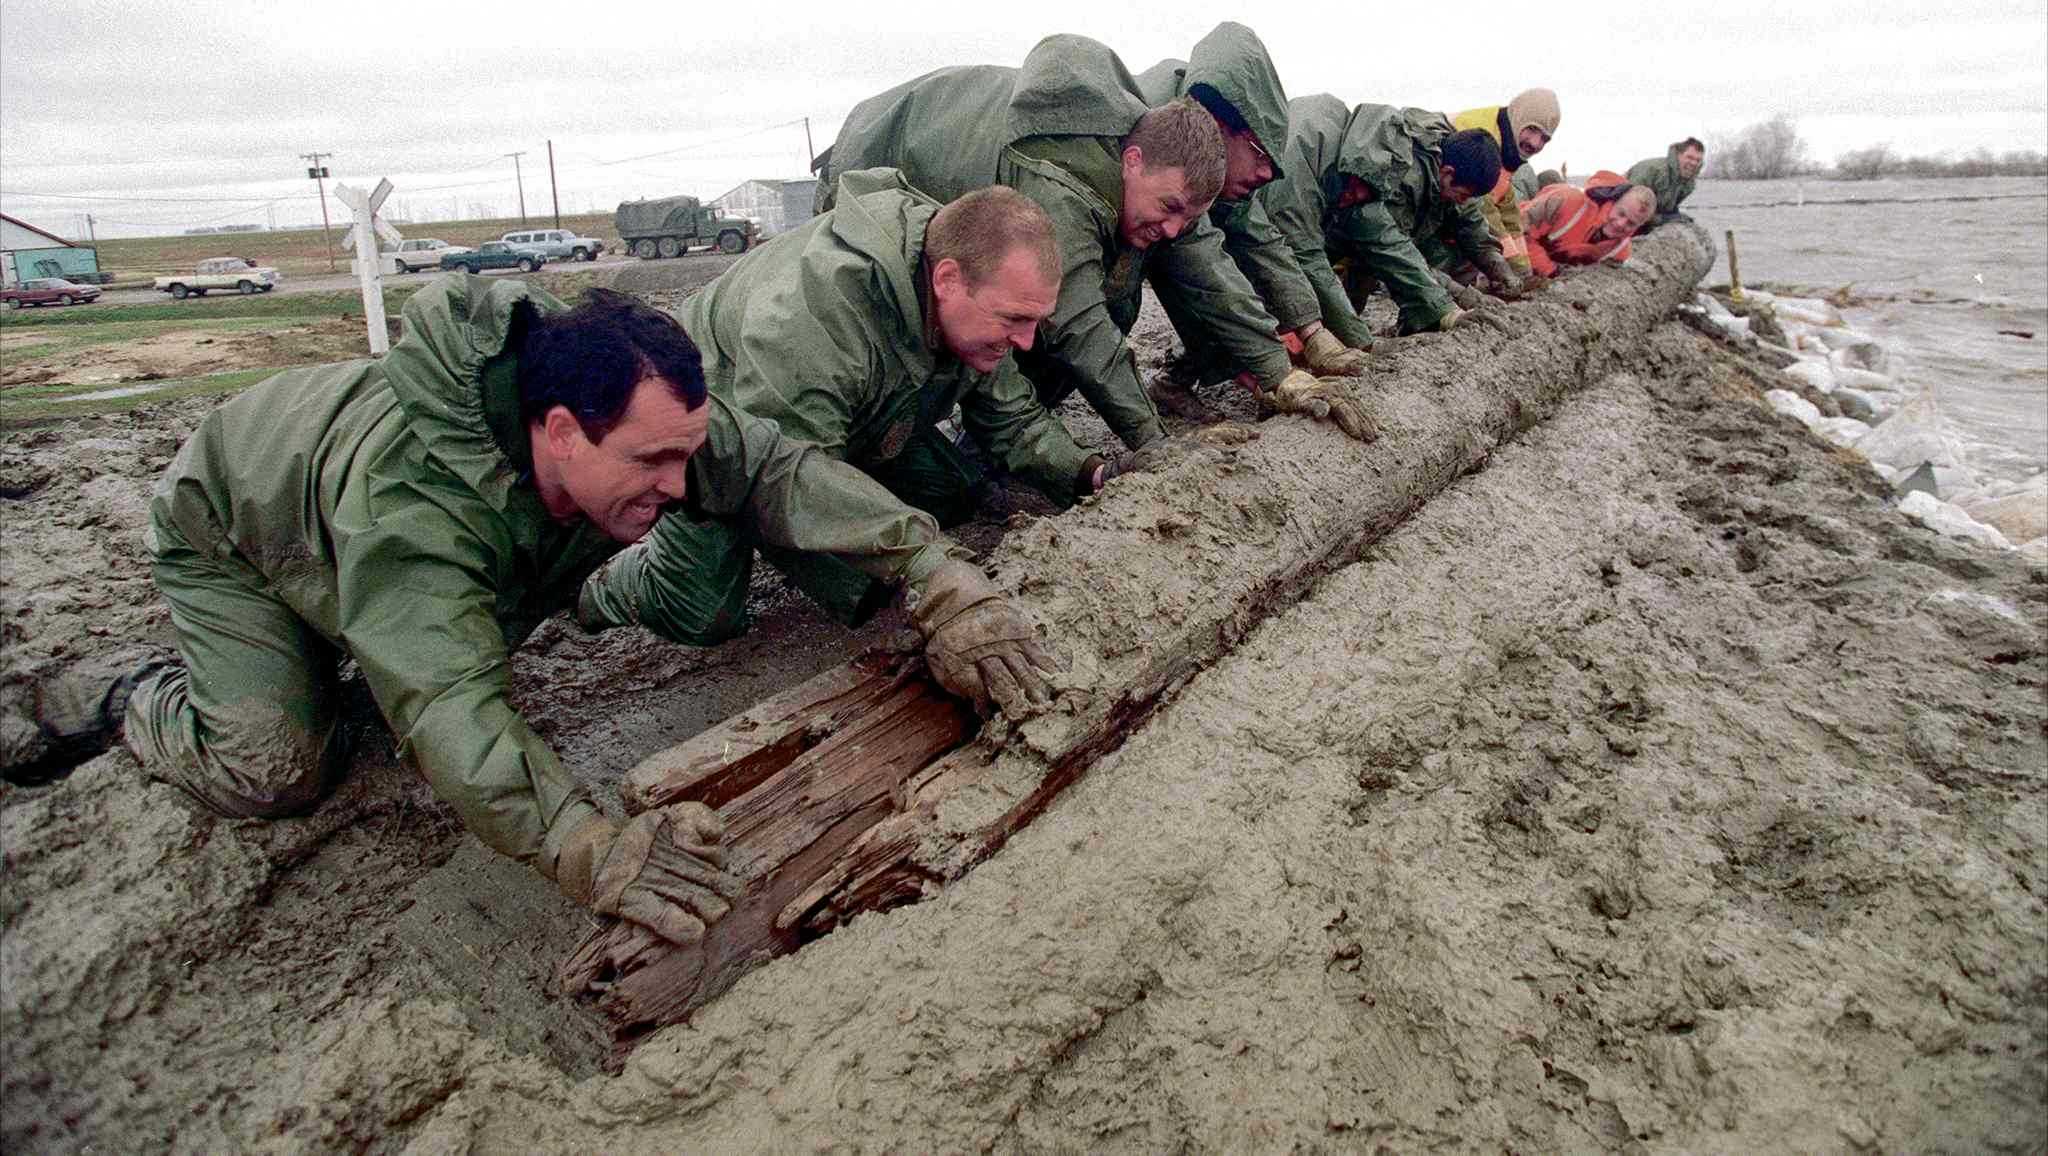 Members of Calgary's First Battalion, PPCLI battled 80 km/h winds in St Jean Baptist as they scrambled to reinforce the town's protective earthen dike. At risk of erosion from the pounding waves, the soldiers pushed logs and sandbags into the swollen Red River to act as a breakwater and a means of a protection for the structure. Moisture from the waves turned the mostly clay dikes into a mud pit, making the work nearly impossible.